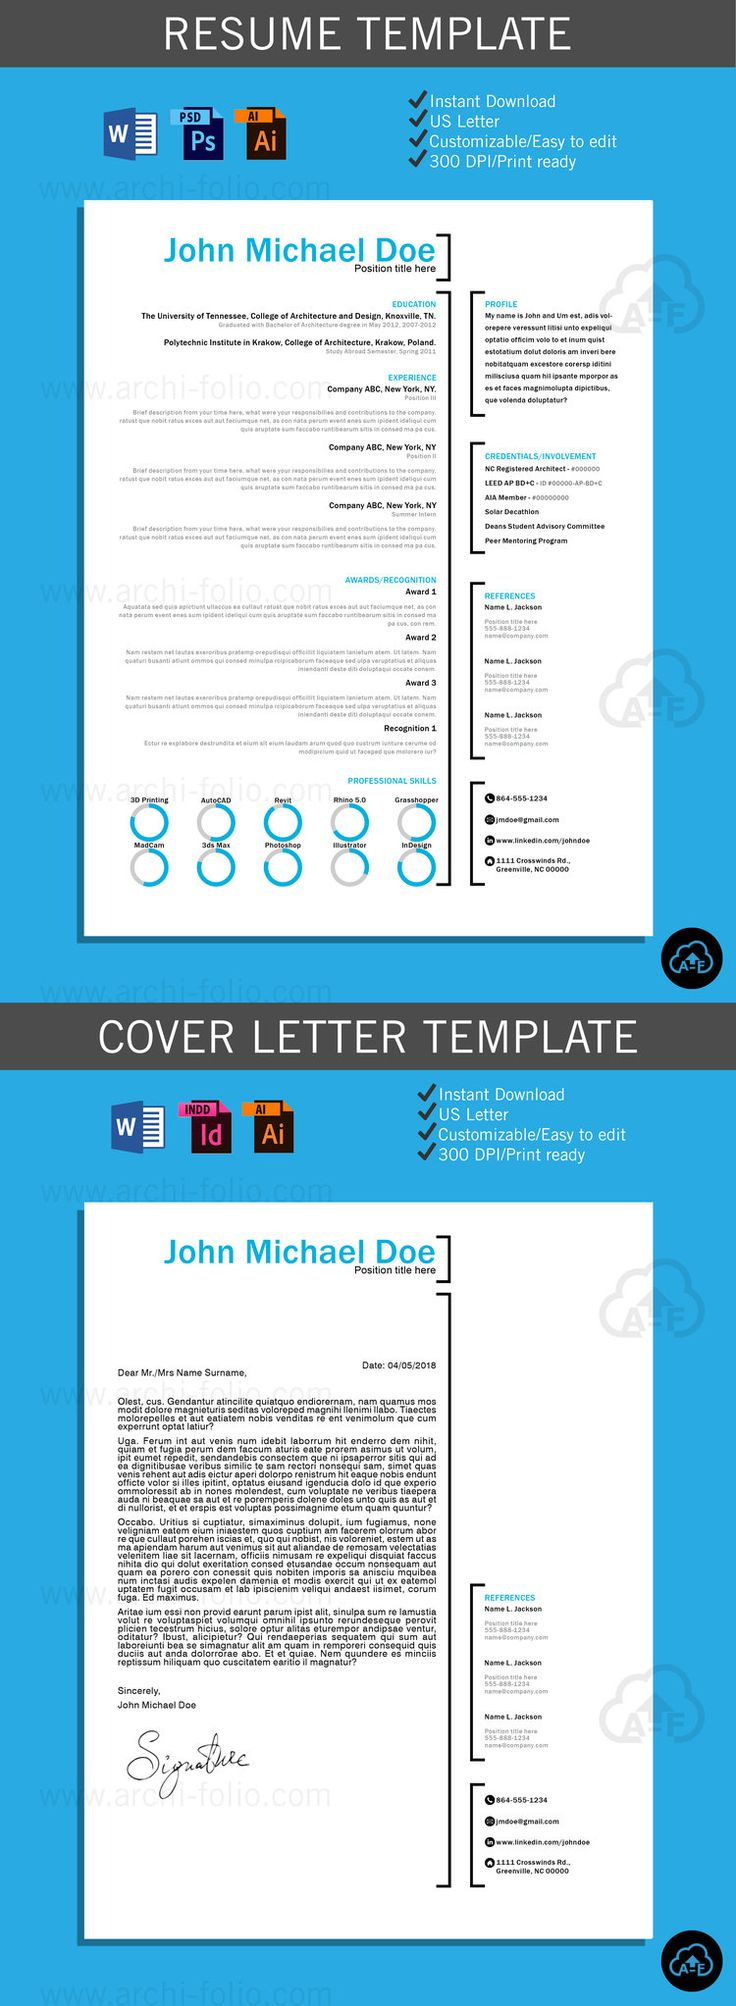 Looking for someone to design and edit your resume? Check out my Fiverr gig! #pdf #architectural #resume for #internship #architecture #student #resume #architect #cv #pdf #architect #cv #template #word #architect #resume #format doc #architecture #resumes and #portfolios #architect #resume #word #file #architecture #resume #templates #architect #resume #samples #pdf #architectural for #internship  #templates for #microsoft #word #architect #resume #templates for #adobe #illustrator #architect #